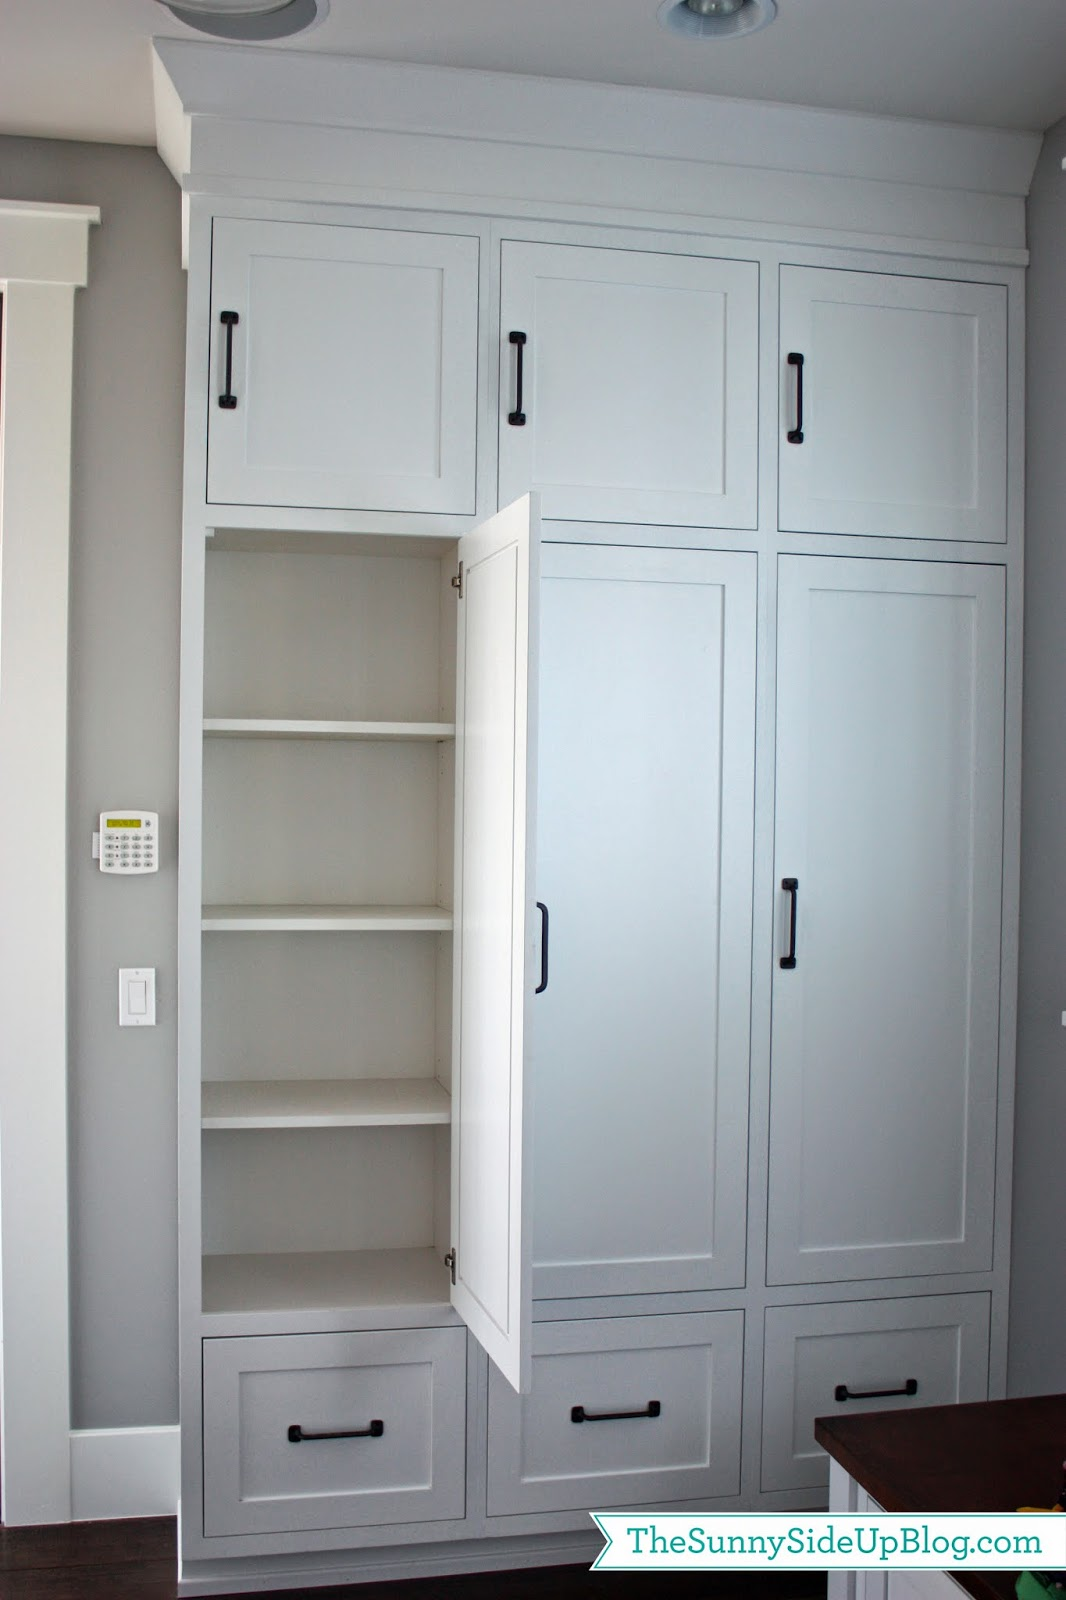 My new organized mudroom the sunny side up blog for Ready built cupboards